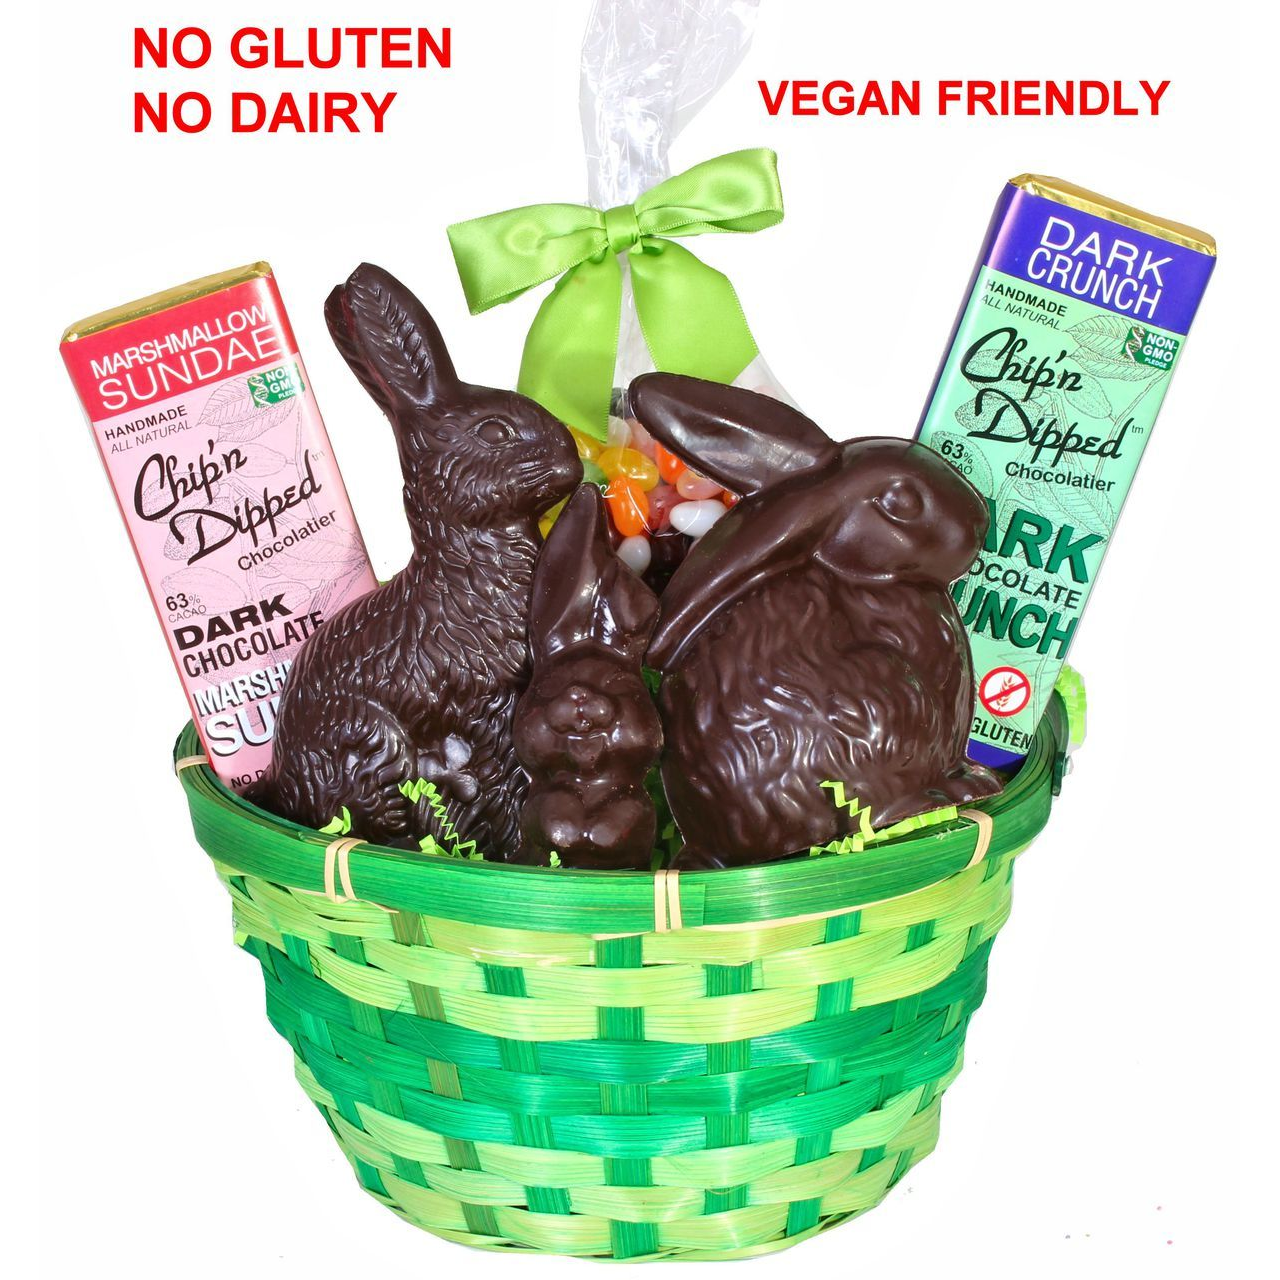 Vegan easter basket chipn dipped chocolatier vegan easter basket negle Images